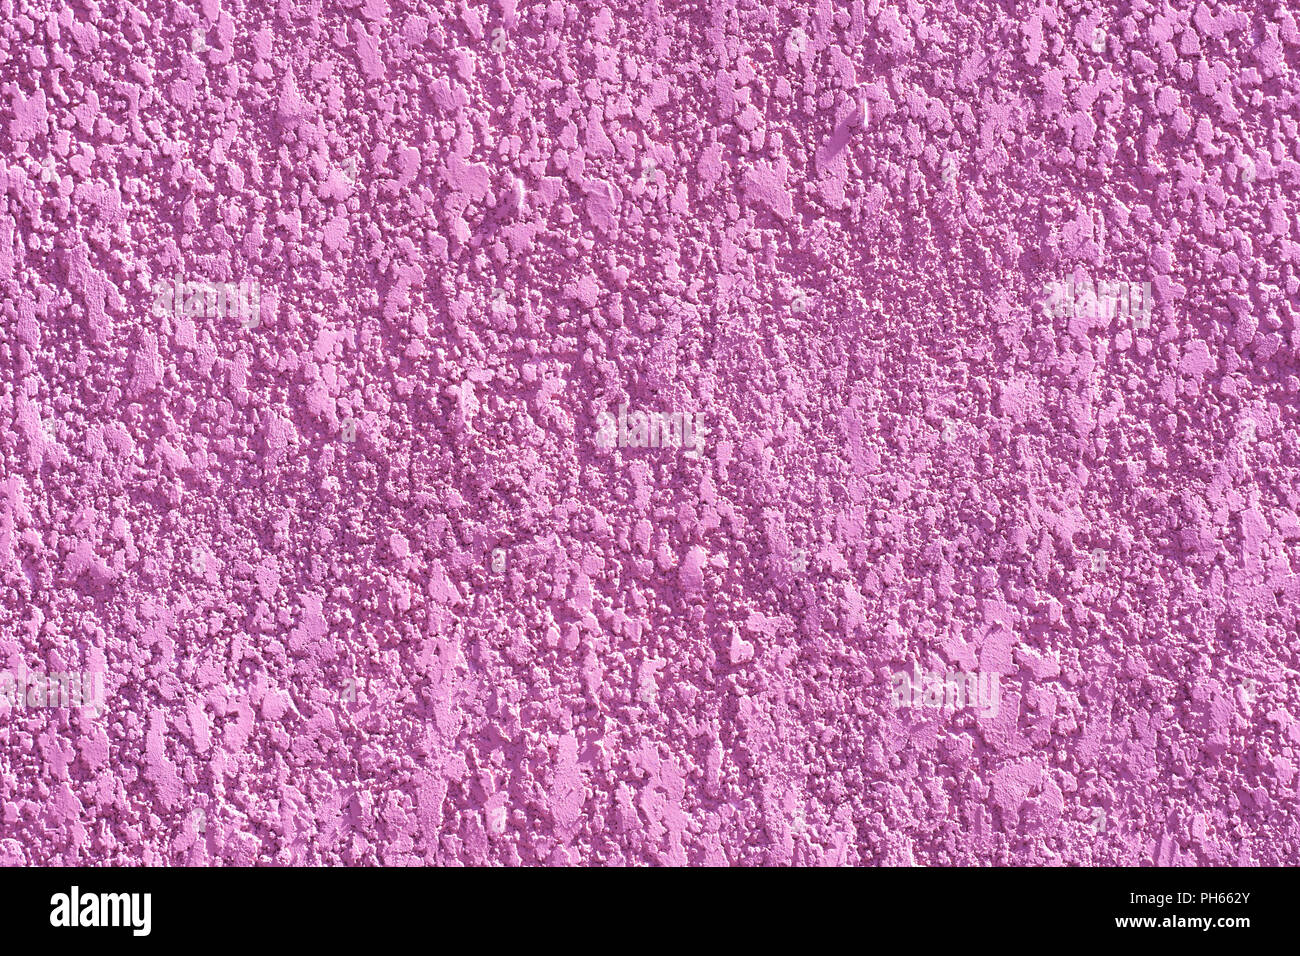 Pink color rough textured background. Vivid, bright background - Stock Image